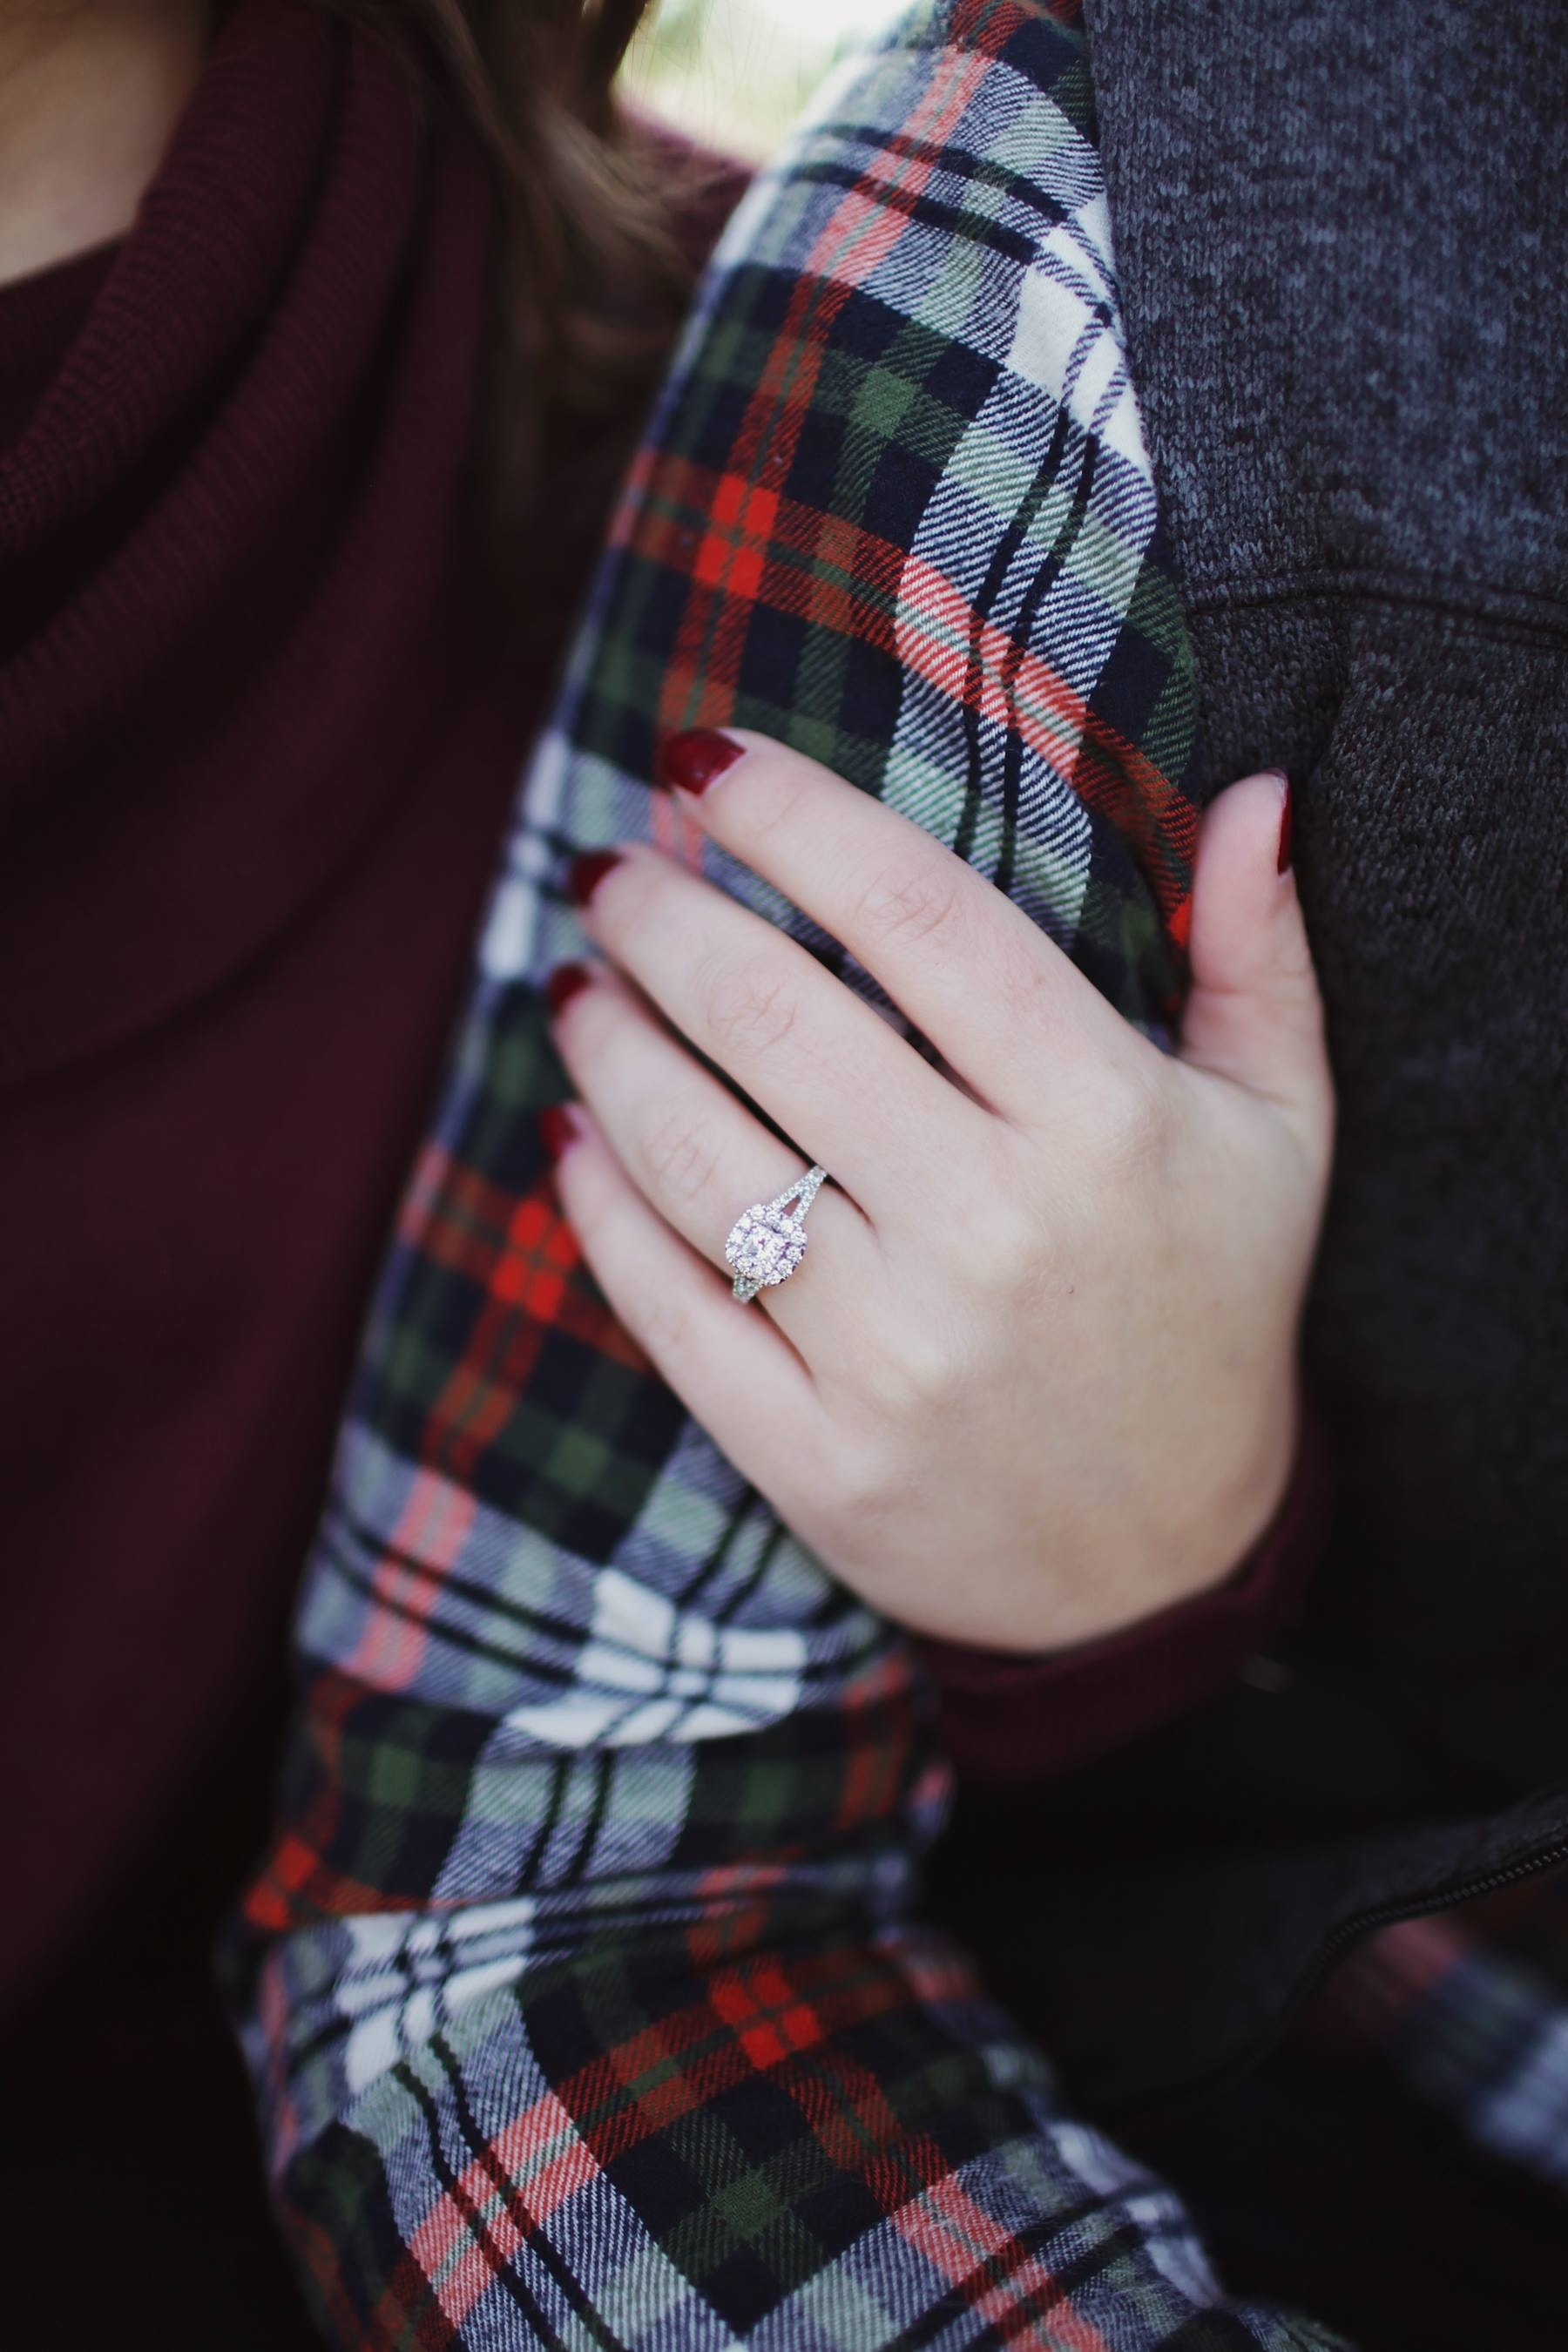 Woman Wearing Silver-colored Solitaire Ring Holding Person's Arm, Arm, Couple, Engagement ring, Fashion, HQ Photo